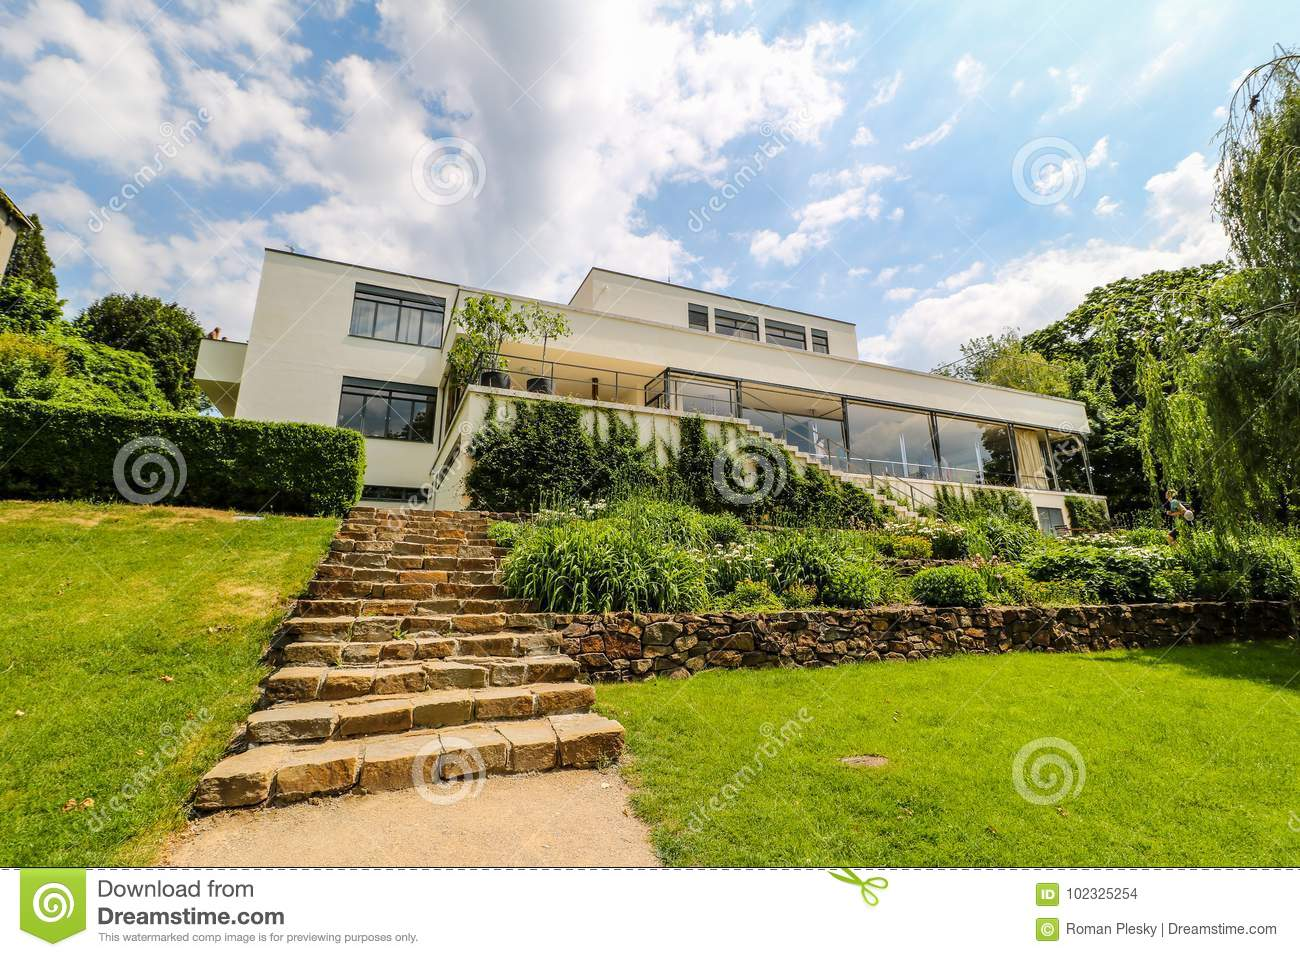 Villa Tugendhat Villa Tugendhat In Brno Czech Republic Editorial Stock Image